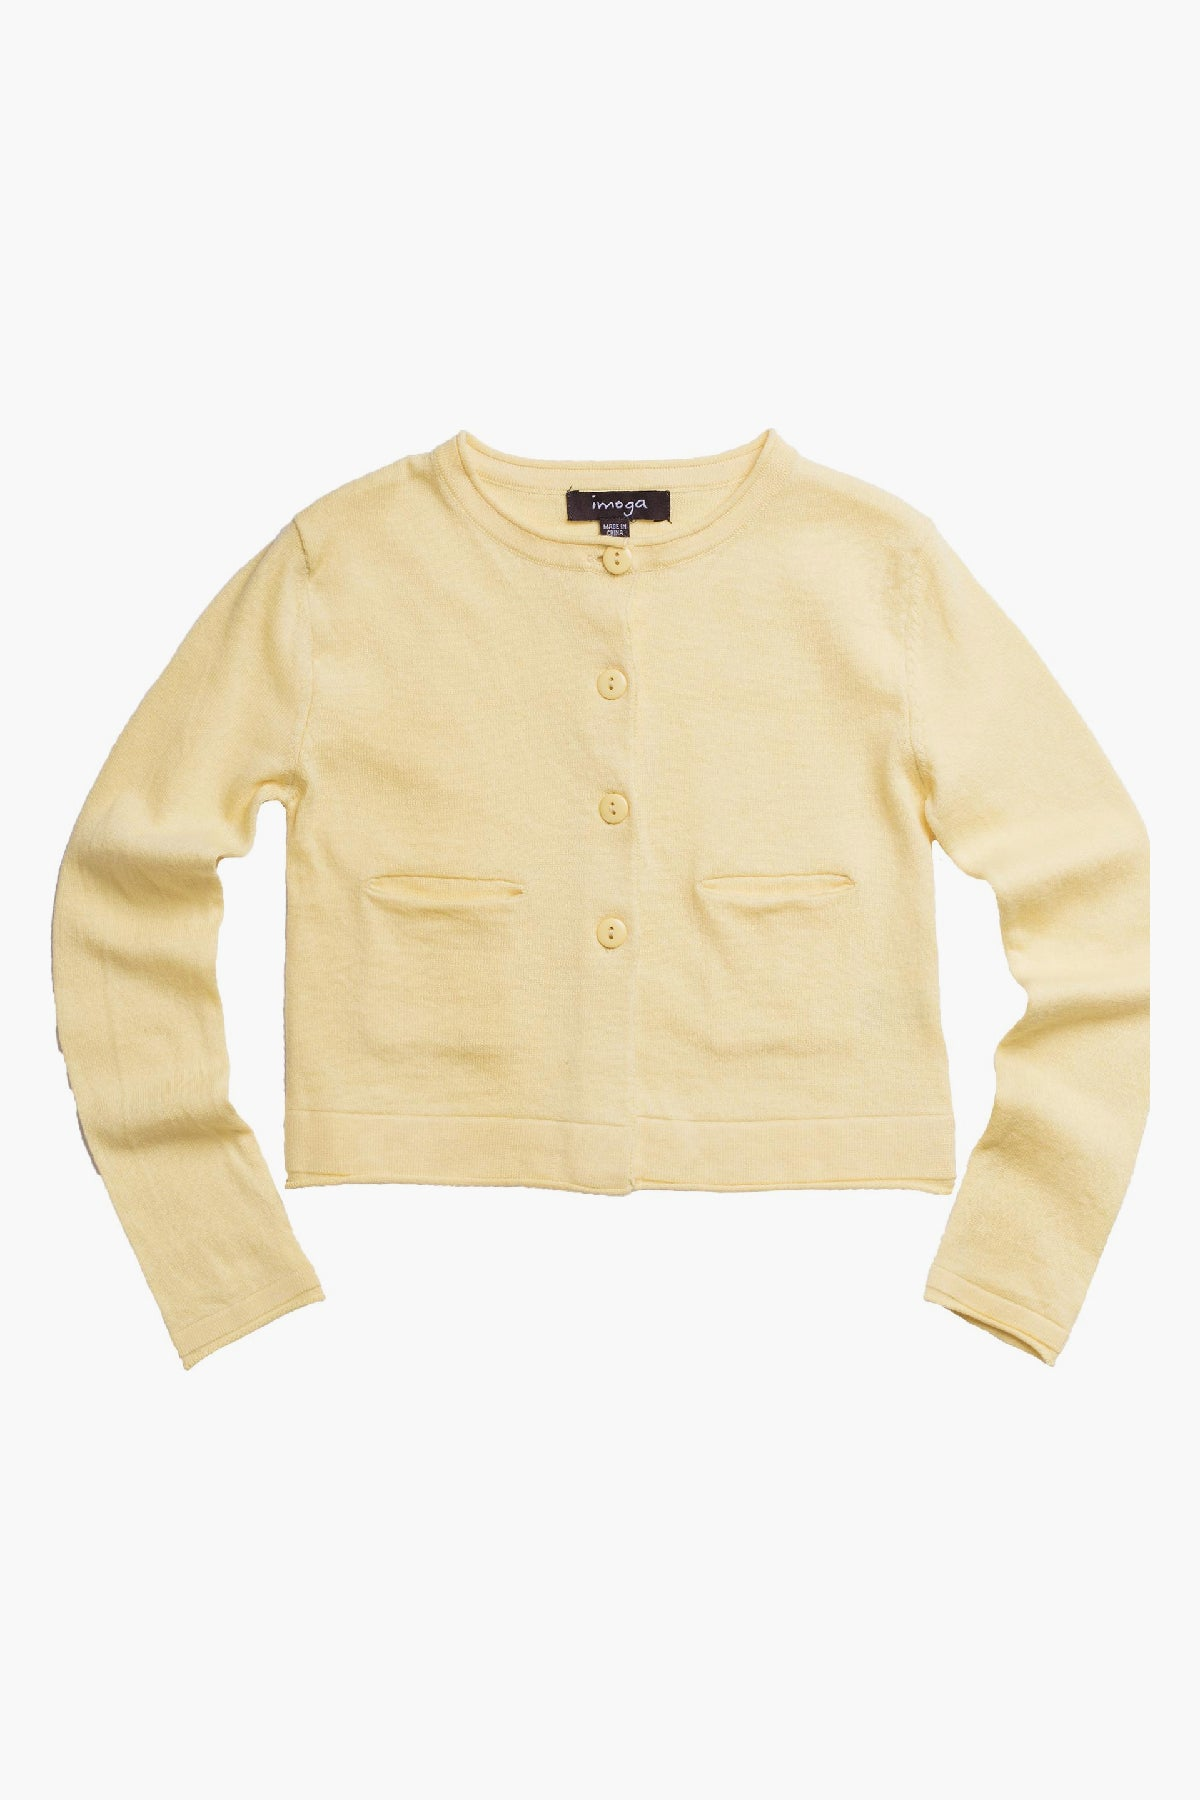 Girls Sweaters and Vests, Kids Clothes | Mini Ruby